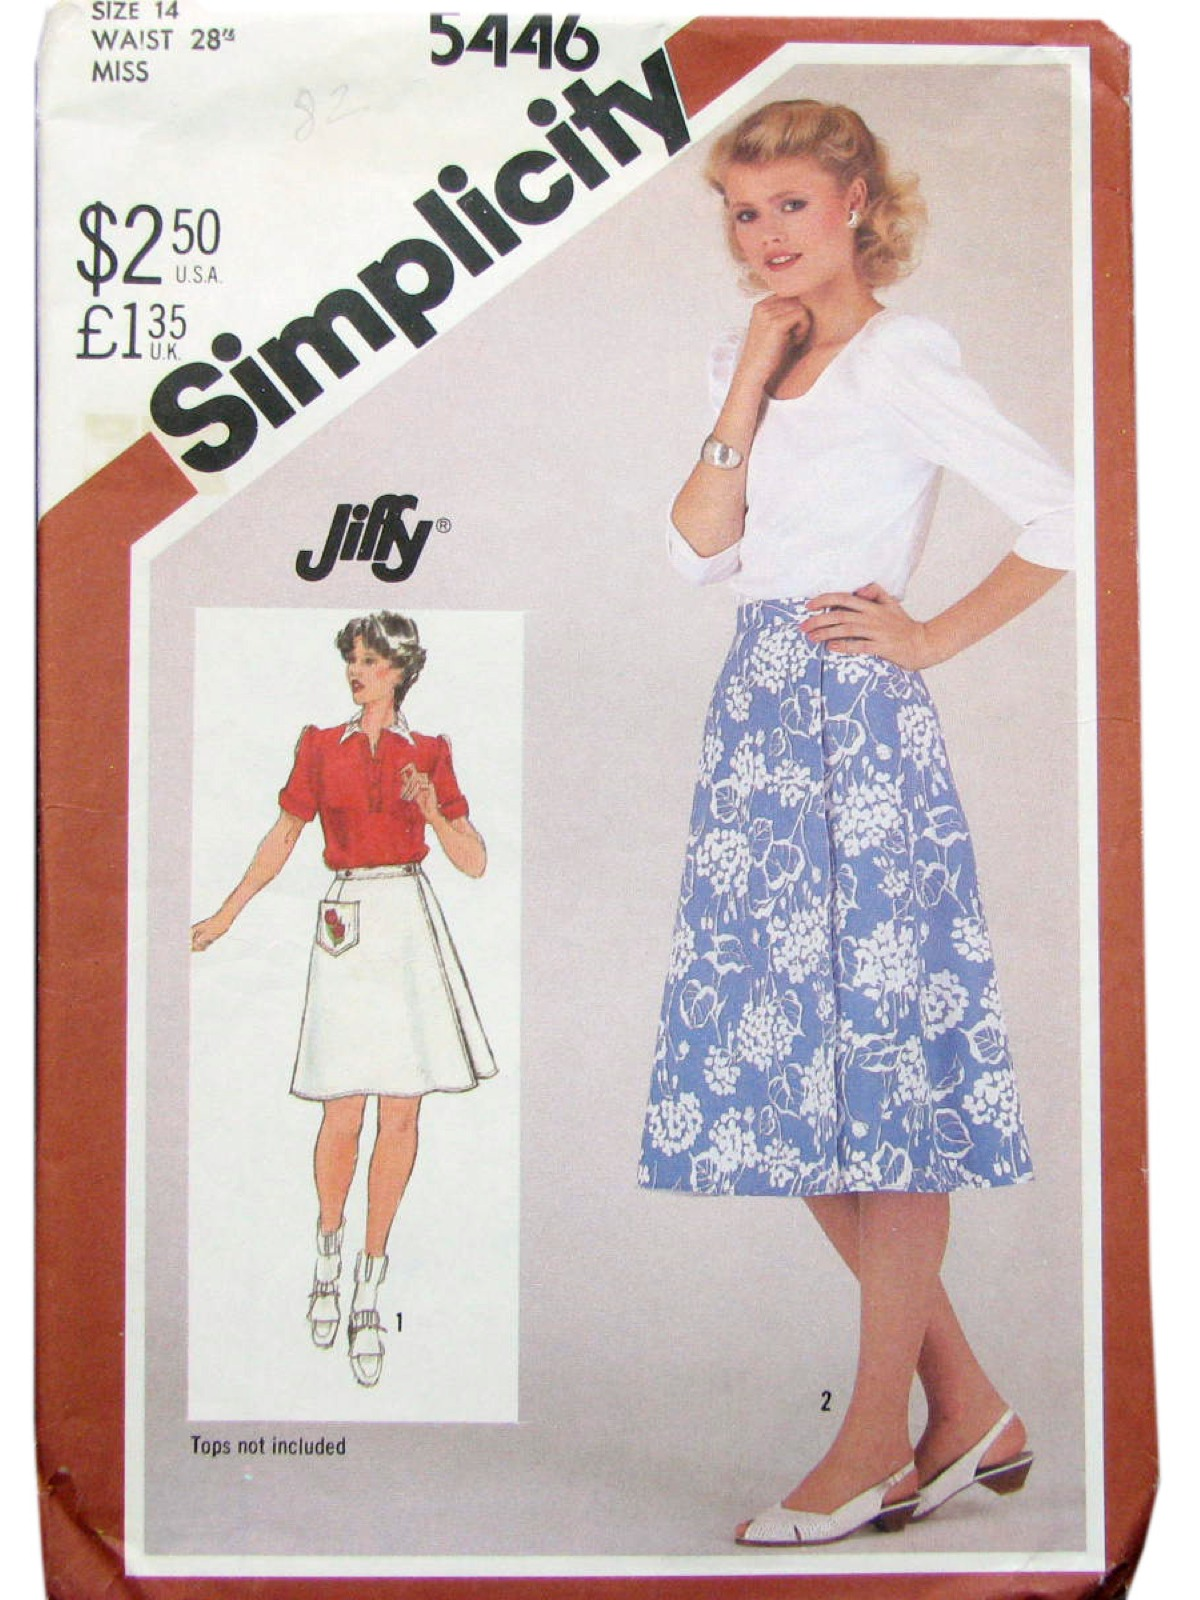 1980 S Sewing Pattern Simplicity 5446 80s Simplicity